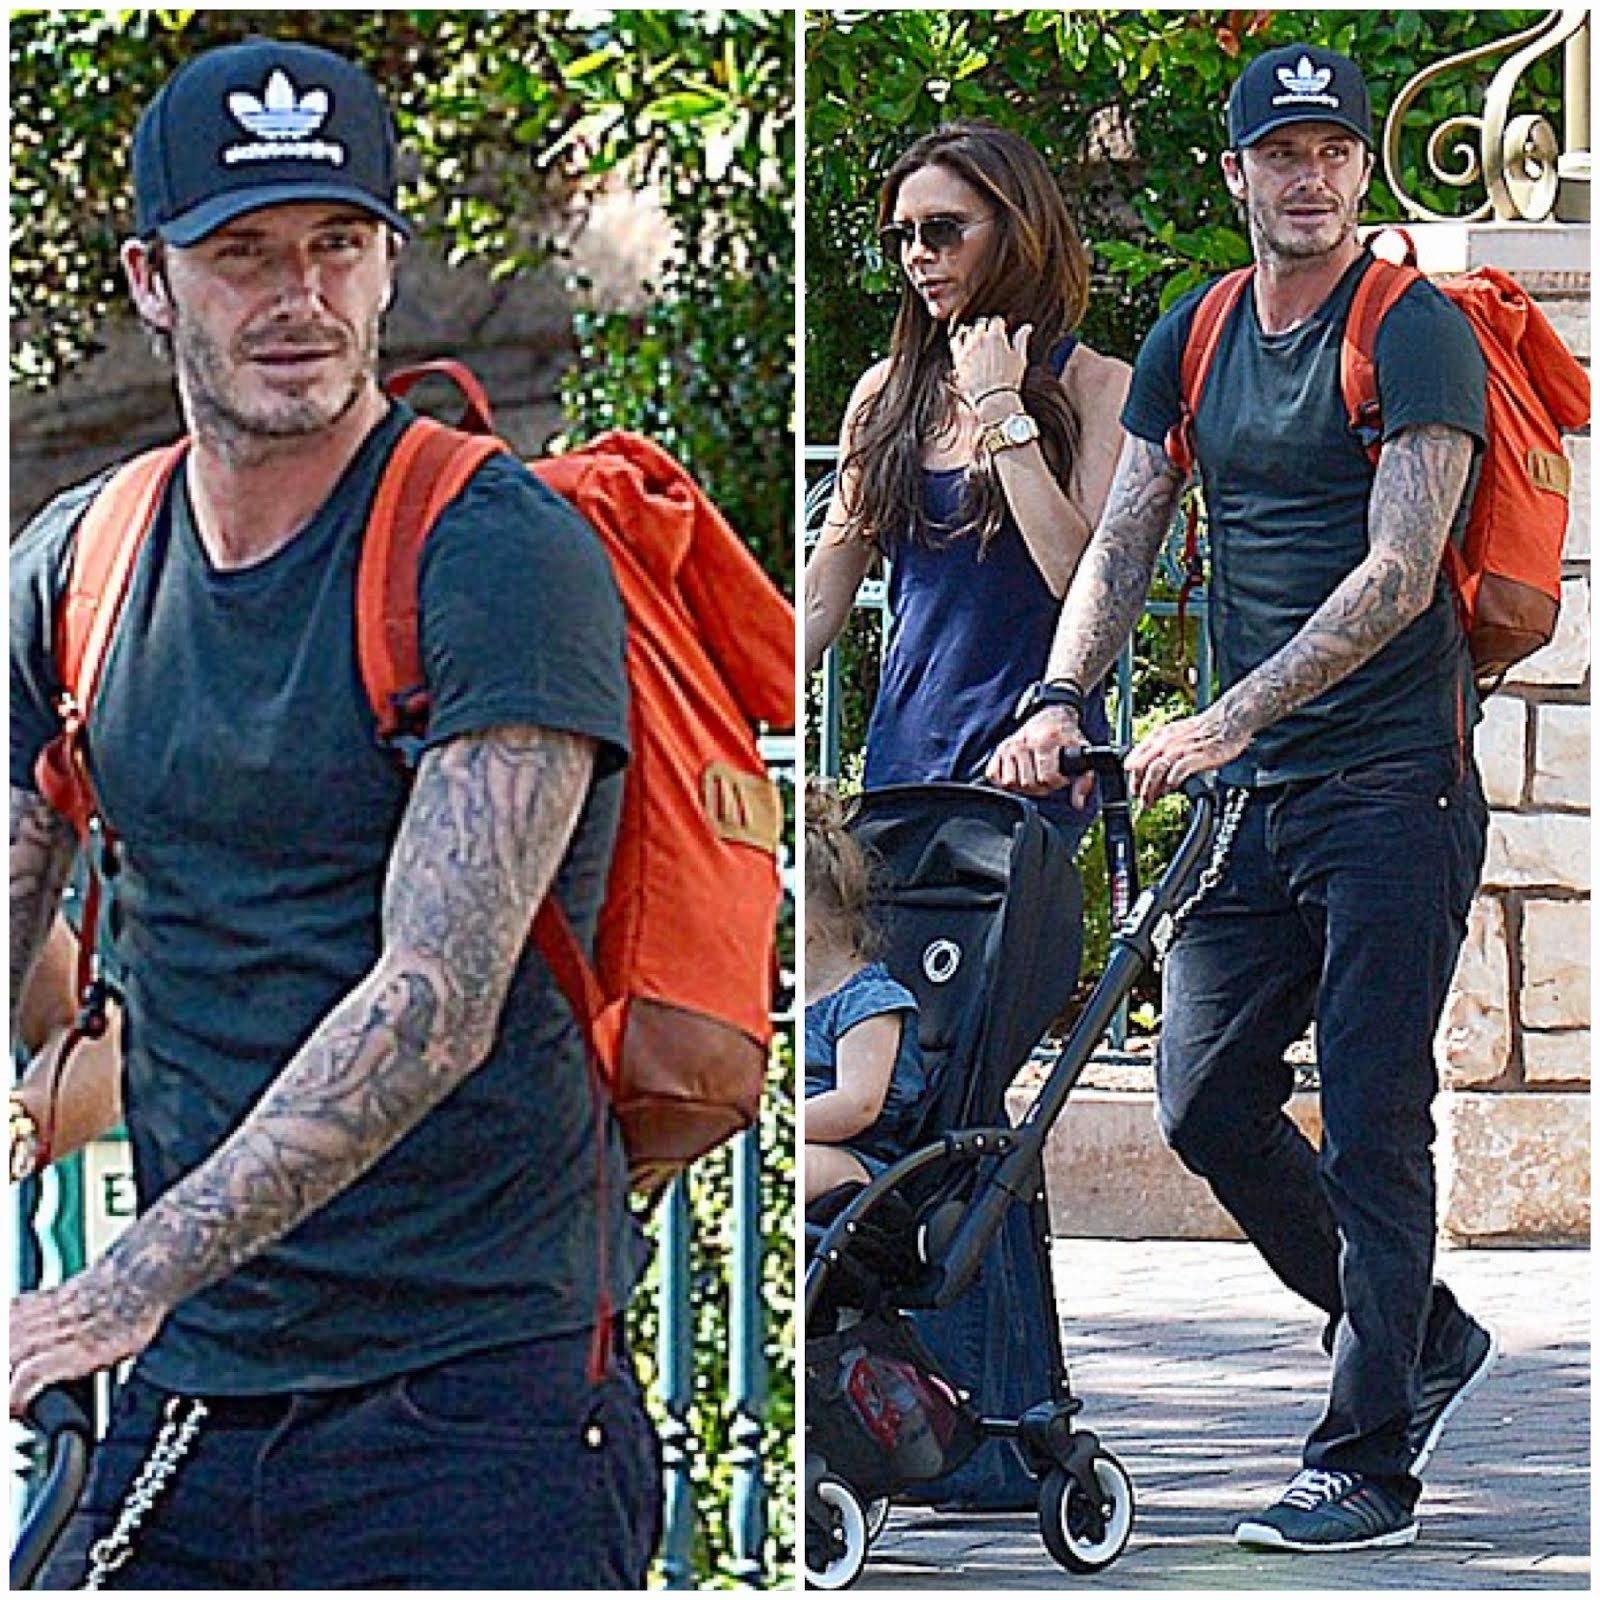 00O00 Menswear Blog: David Beckham's Seil Marschall backpack - Disneyland, California August 2013